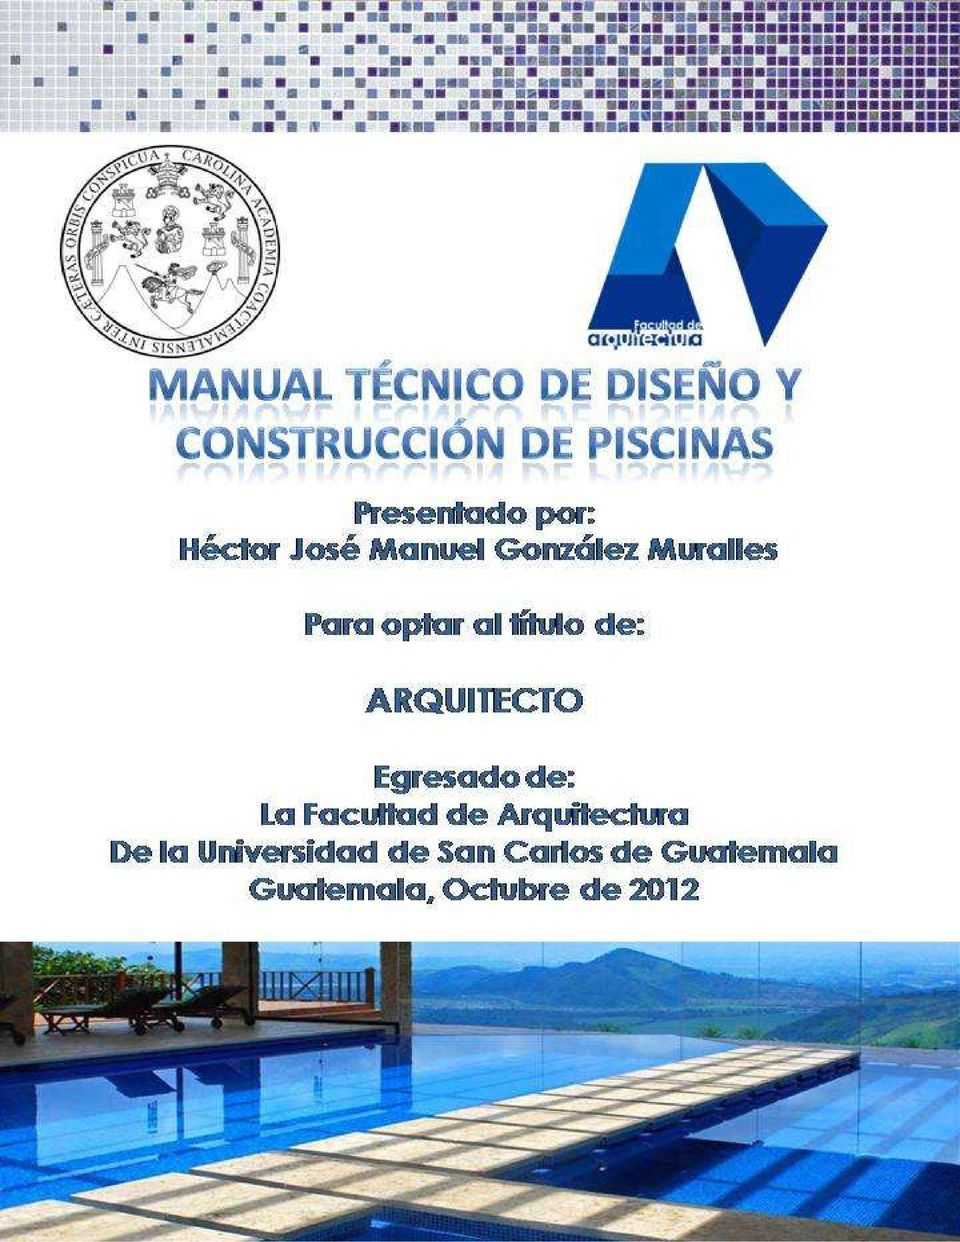 Manual t cnico de dise o y construcci n de piscinas for Manual de diseno y construccion de albercas pdf